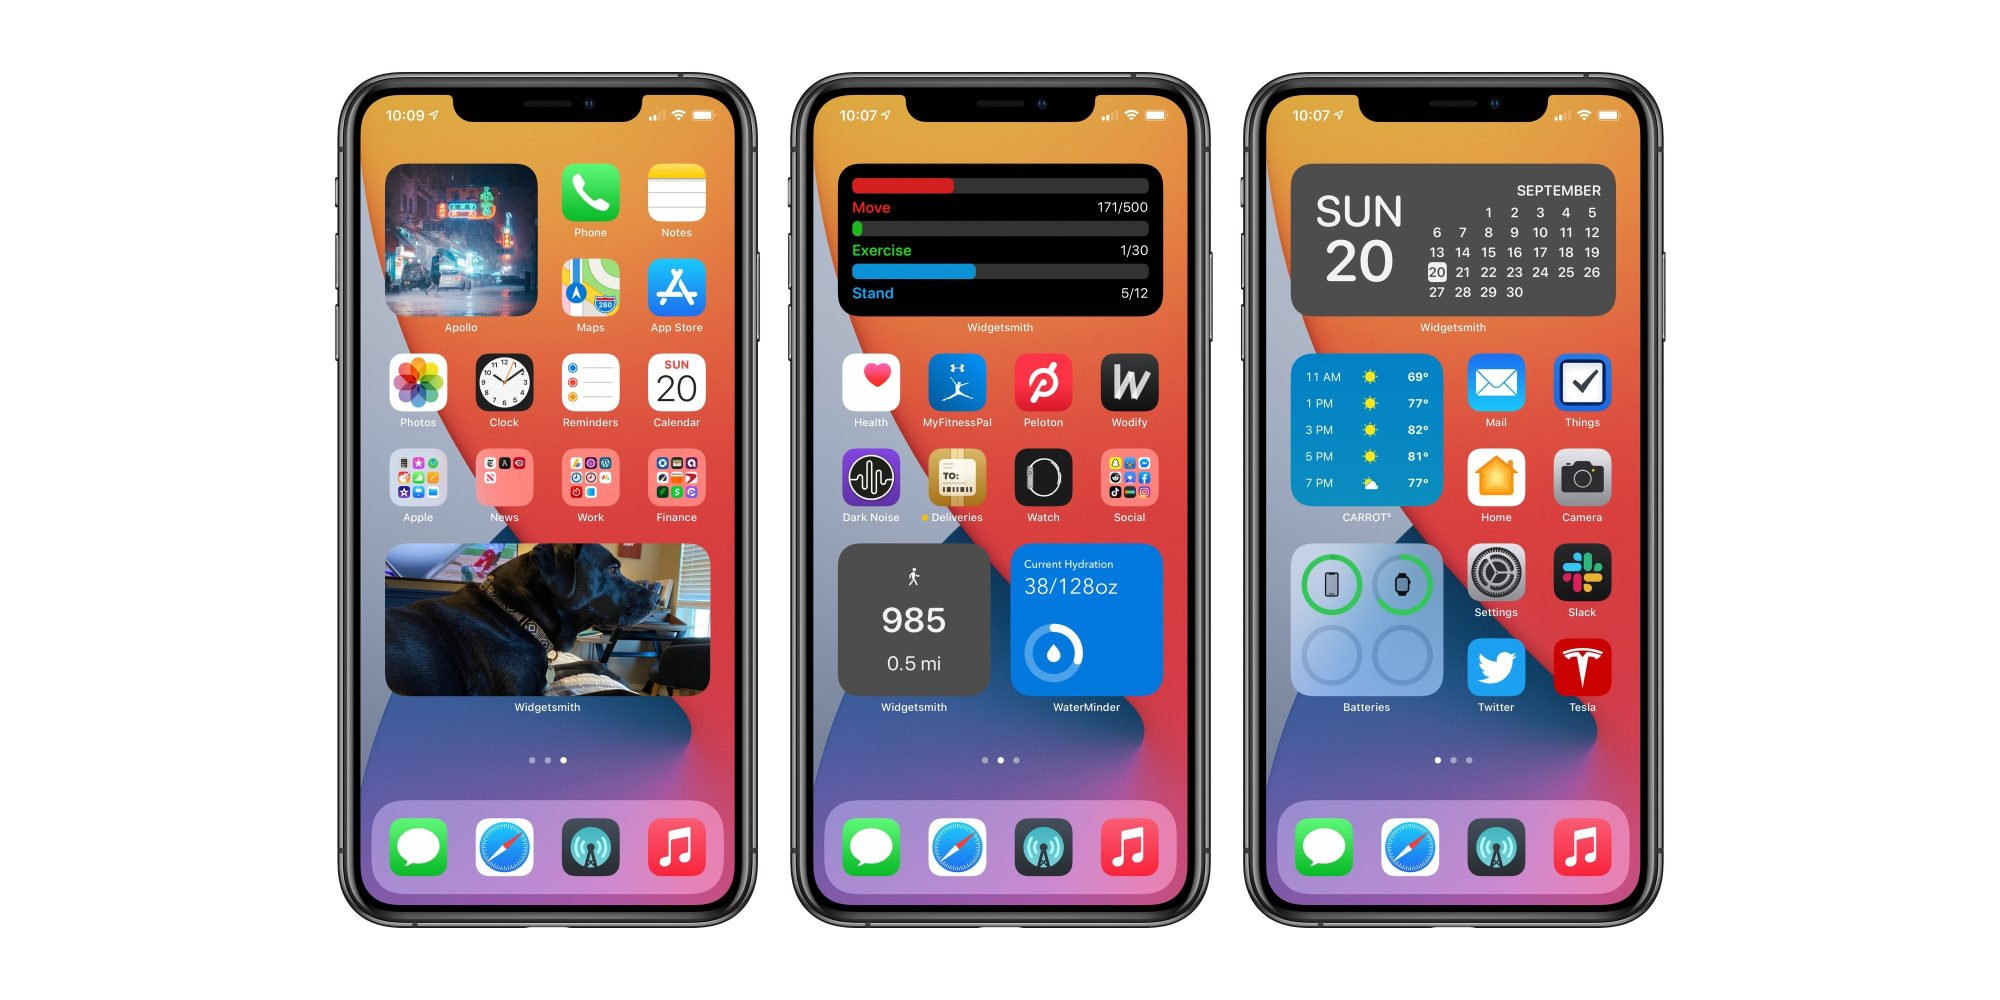 ❤ PSA: No, iOS 14 widgets can't secretly steal private info with your keyboard